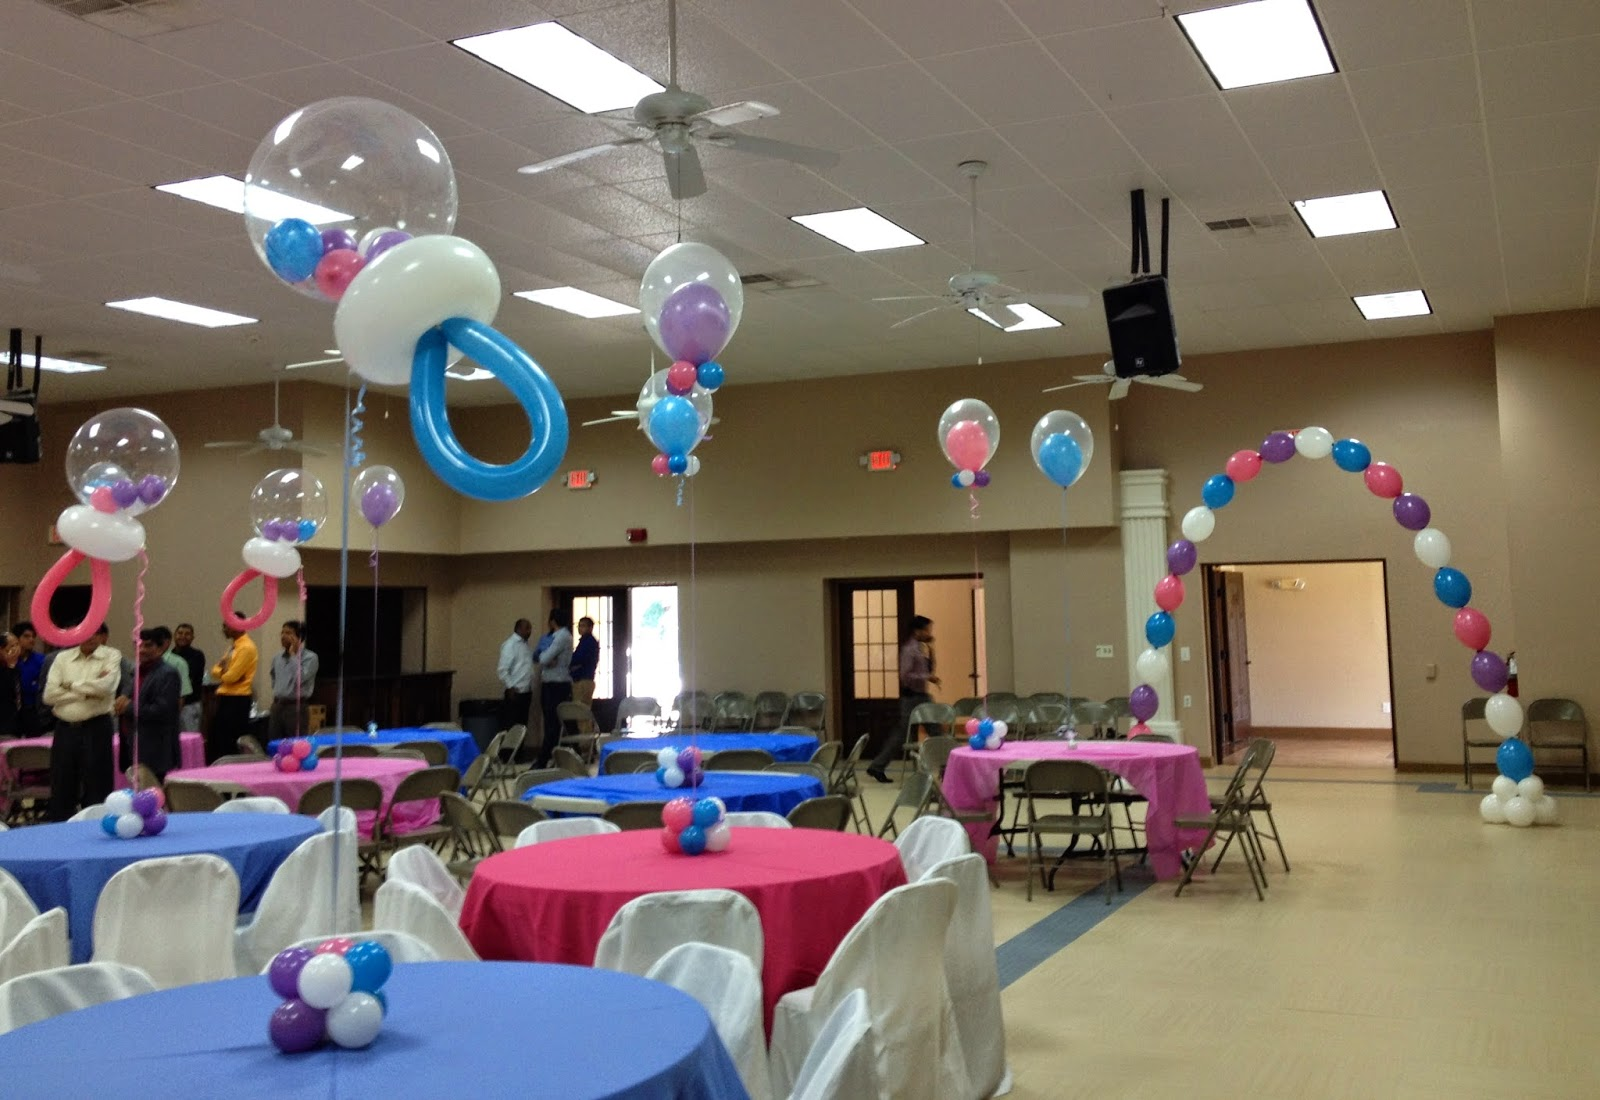 Party people event decorating company rattle and double